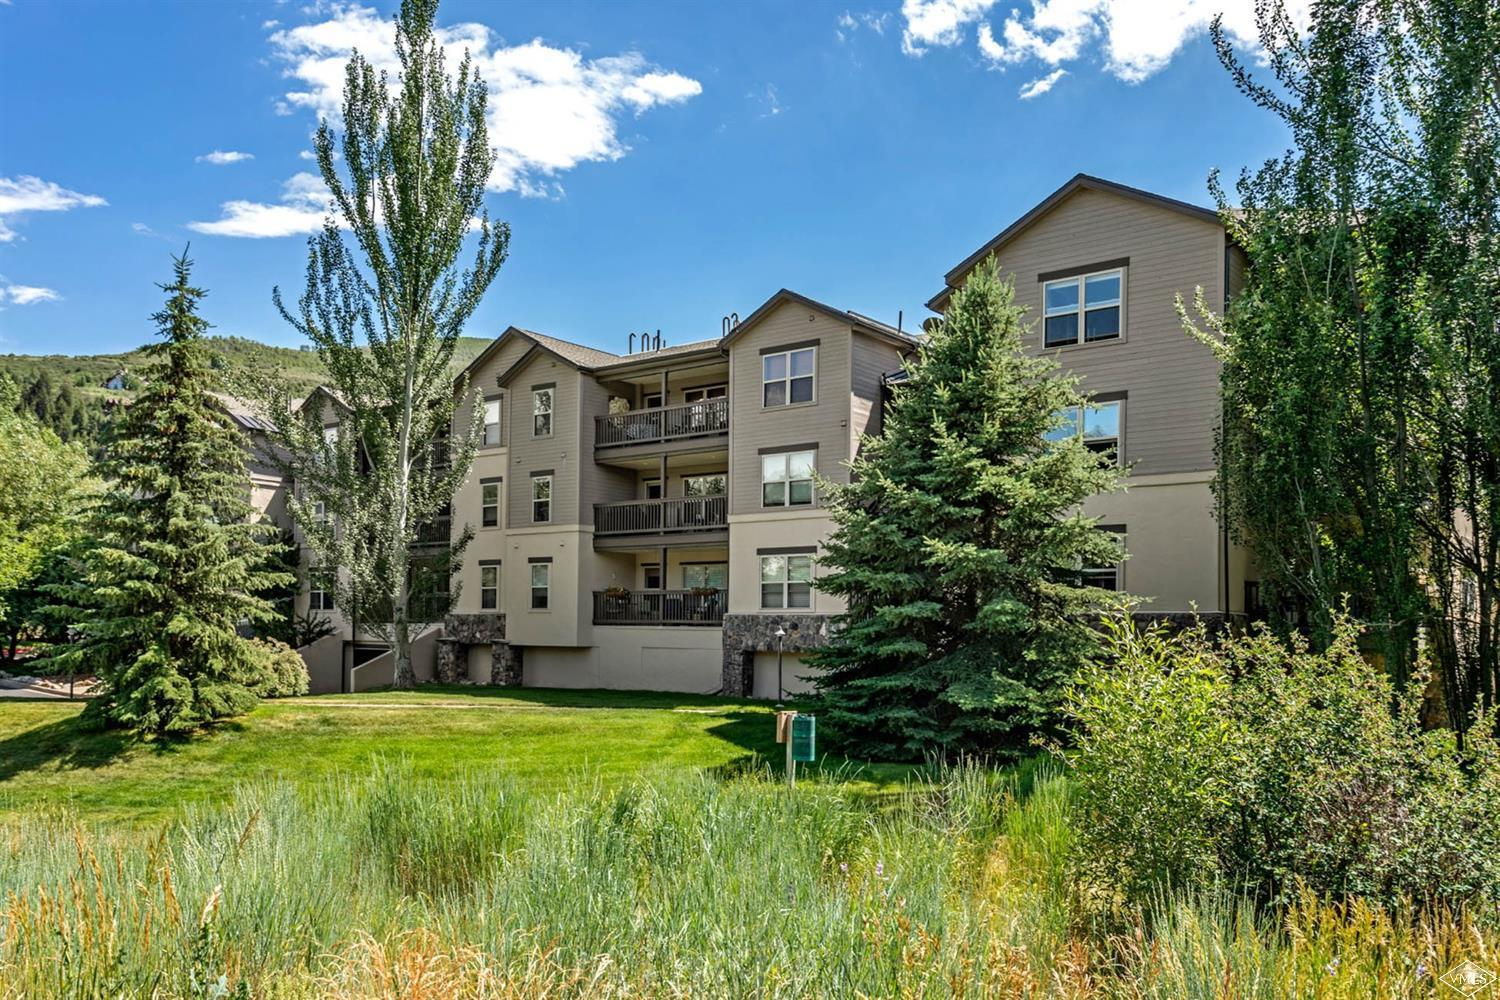 $16,000 price reduction. Much sought after River Pines sunny corner unit with Eagle River views bordering large park with trees. Elevator from heated underground garage with reserved individual parking space plus additional unassigned surface parking. Private storage locker in underground garage. Excellent long or short term rental. On Eagle County bus route. Immediately east of Riverwalk and a short walk to shops, restaurants and hiking and biking trails along the Eagle River.